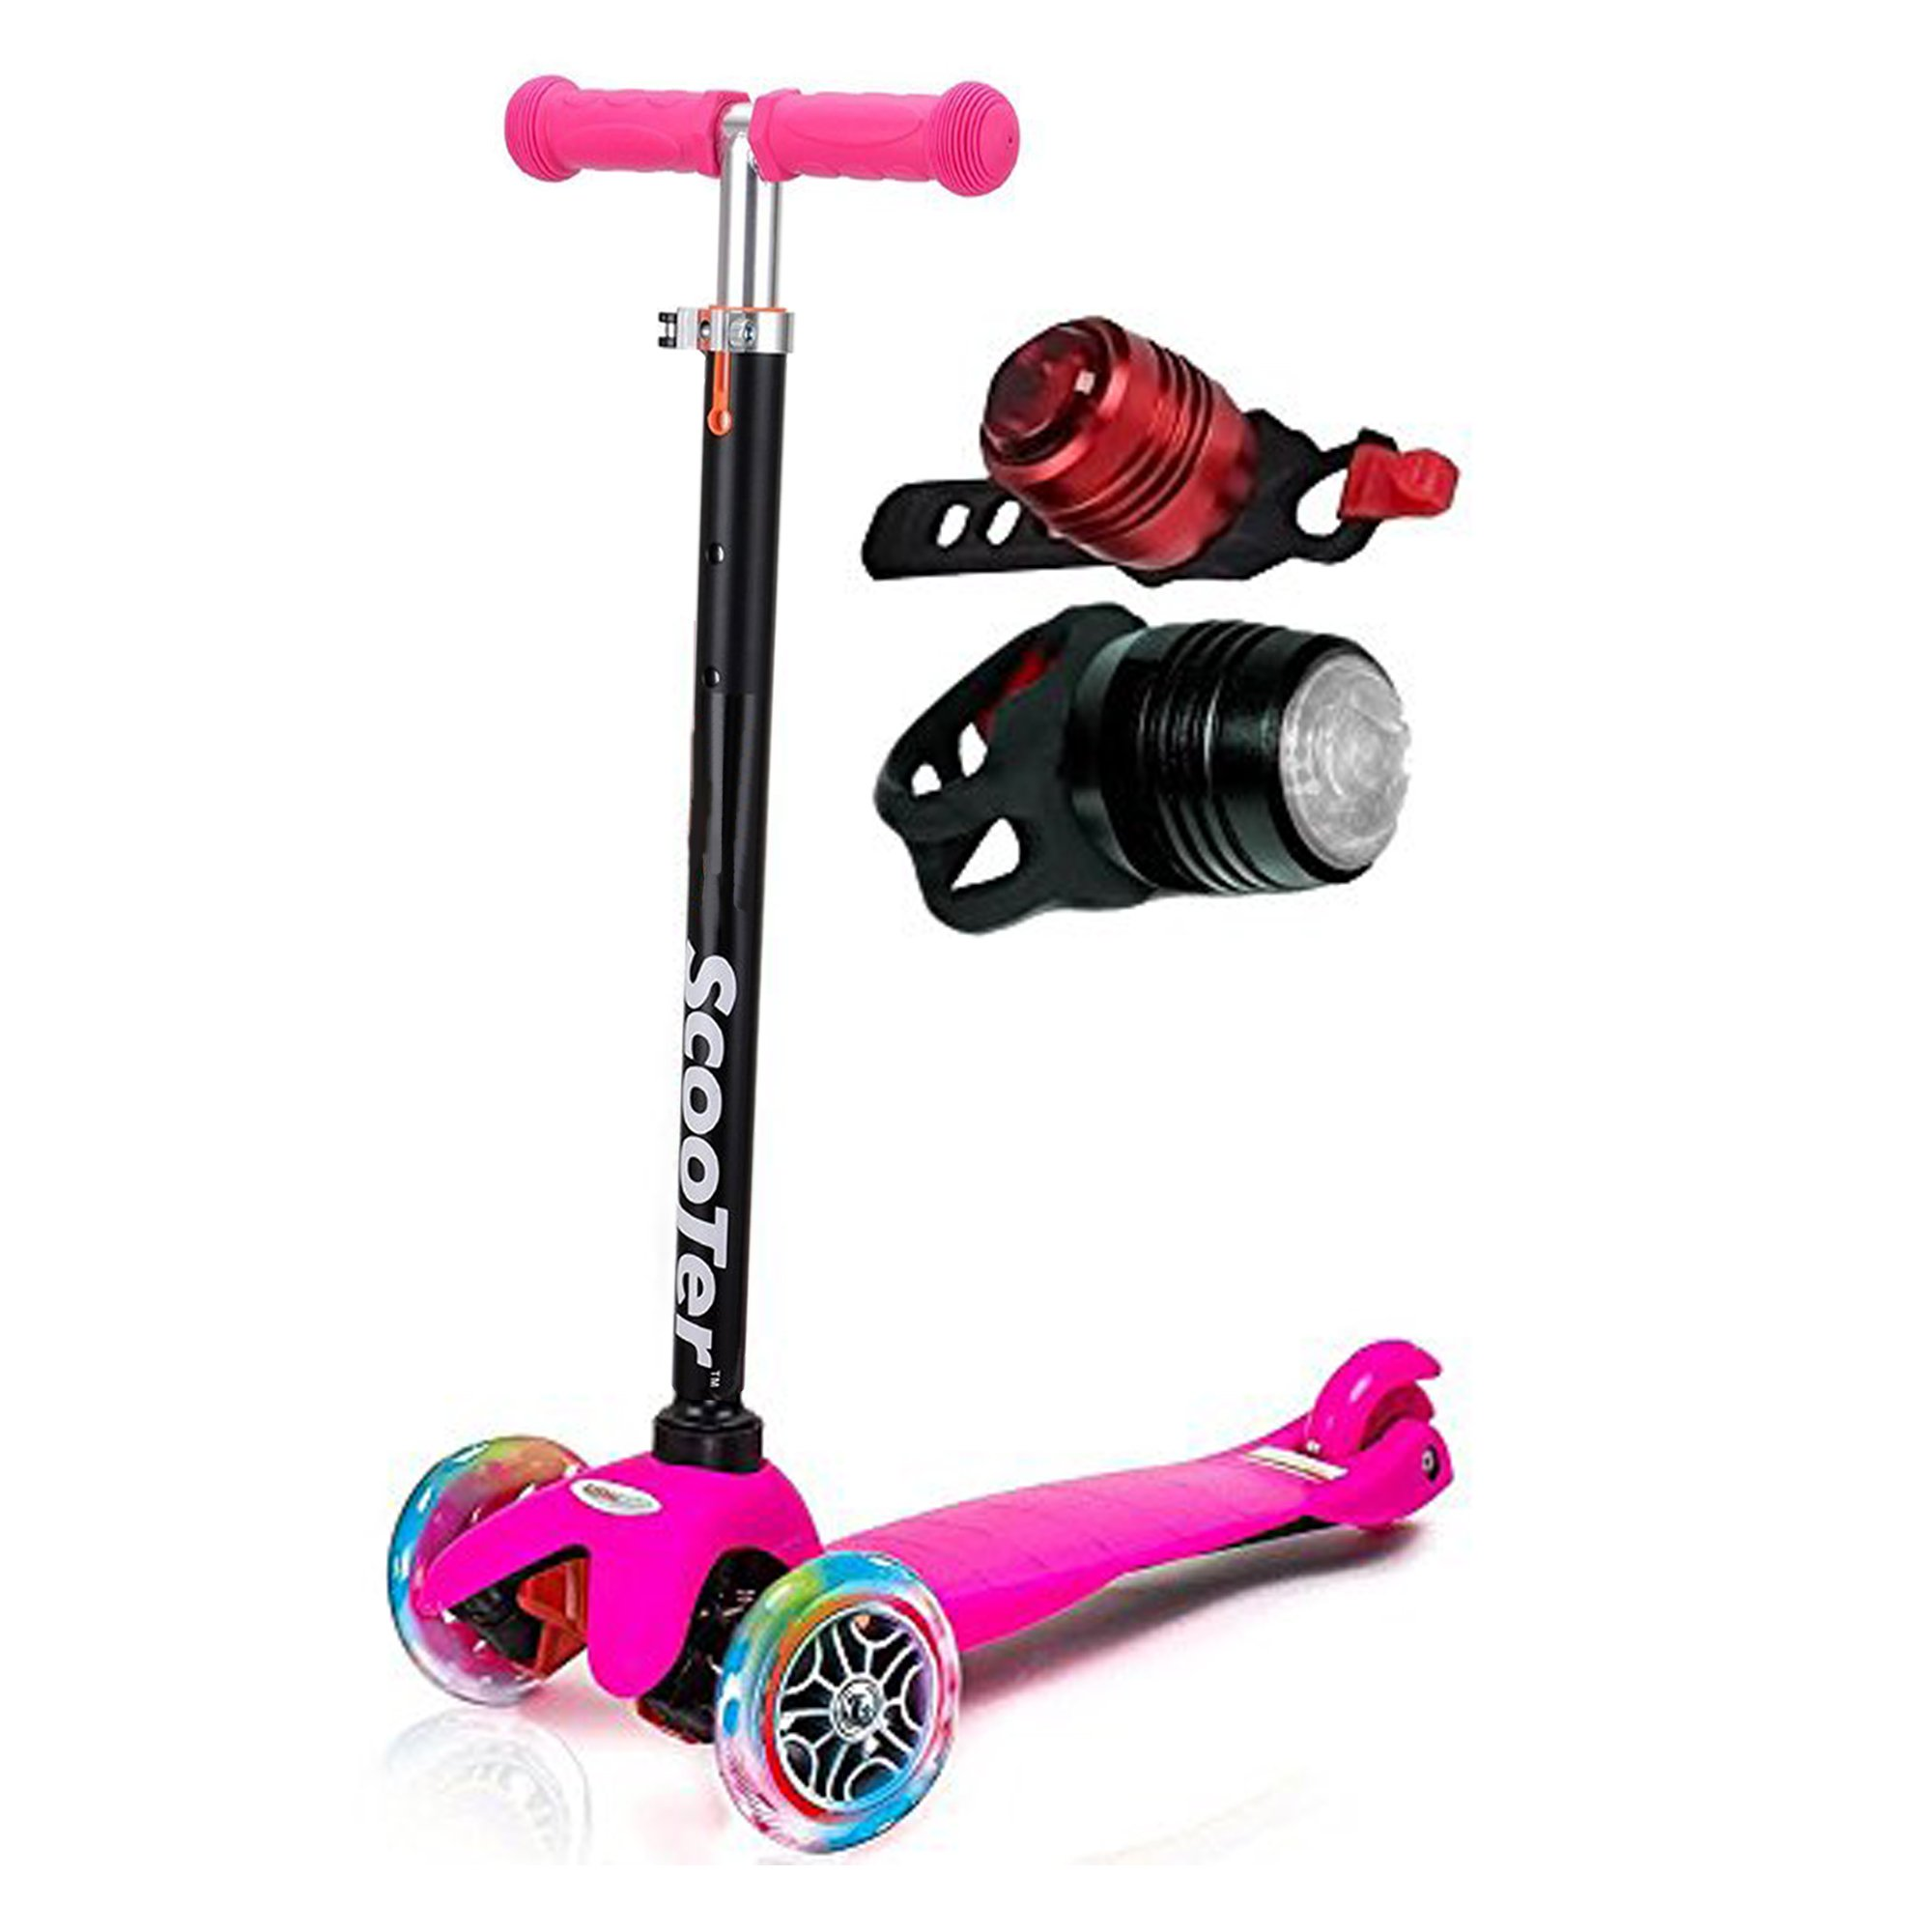 Toysery Scooter for Kids 3 Wheel Adjustable Height Mini Kick Scooter with LED Light Up Wheels 44lb (3 wheels in total - 2 at the front and 1 at the back) Pink Color